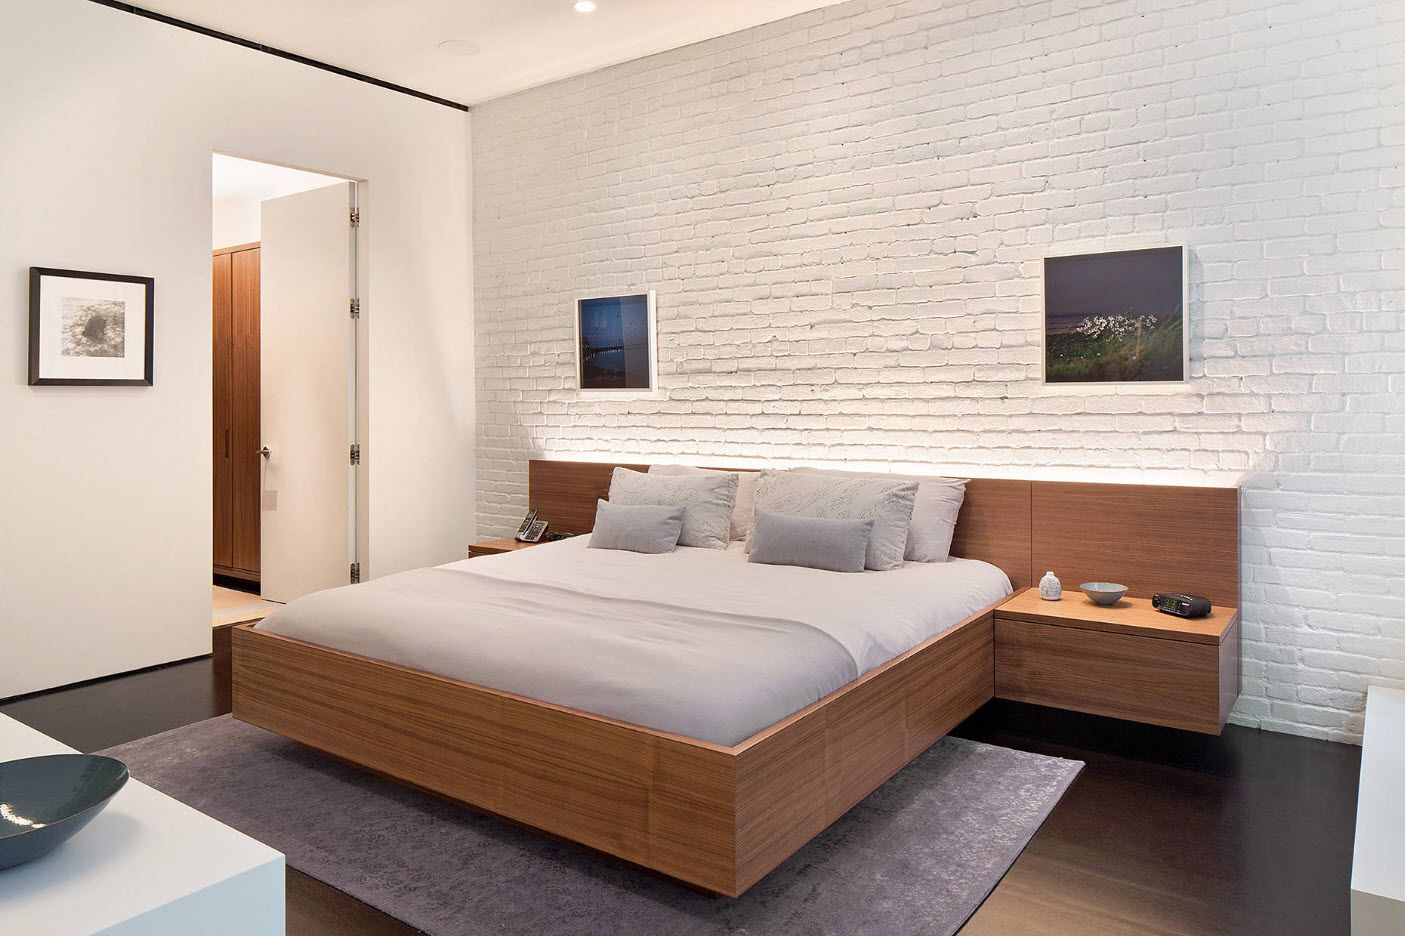 Suspended wooden framed bed and nightstand along with textured whitewashed brickwork creates an amazingly relaxing atmosphere in the bedroom